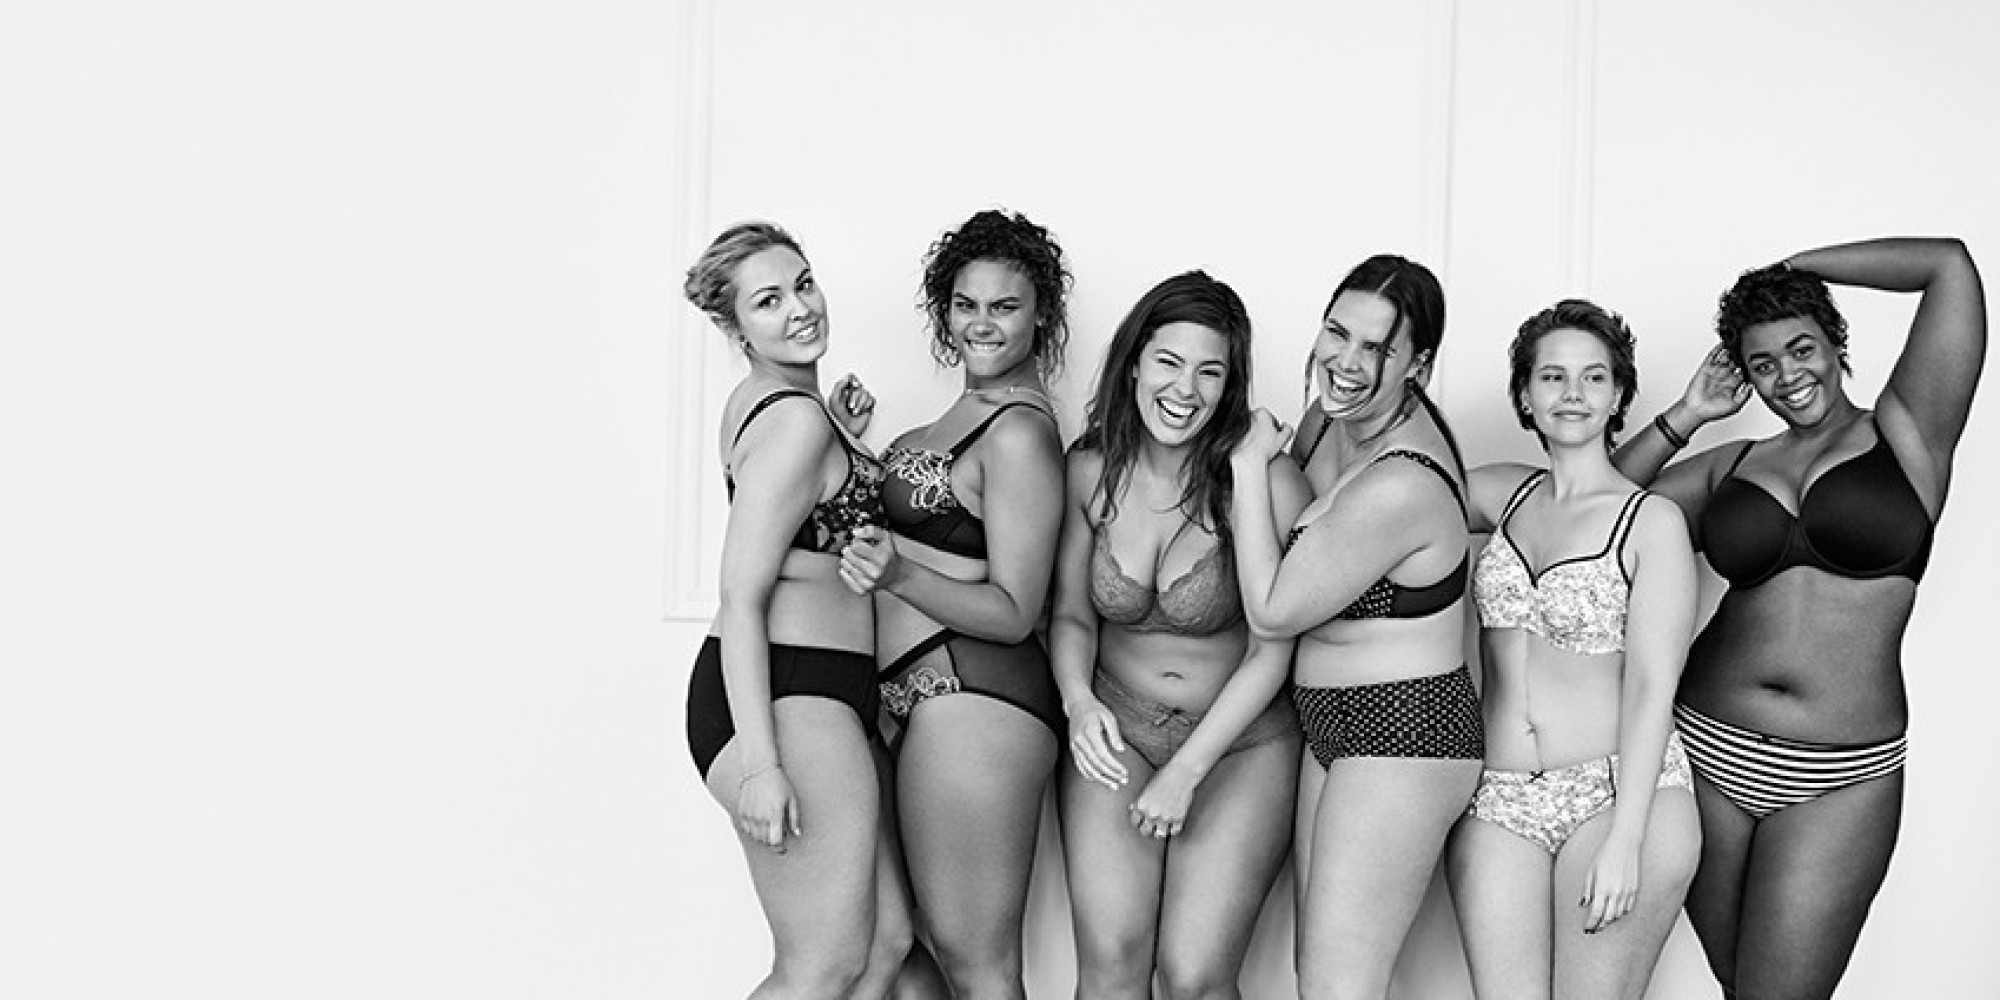 Plus-Sized Models Proud to Say 'I'm No Angel'